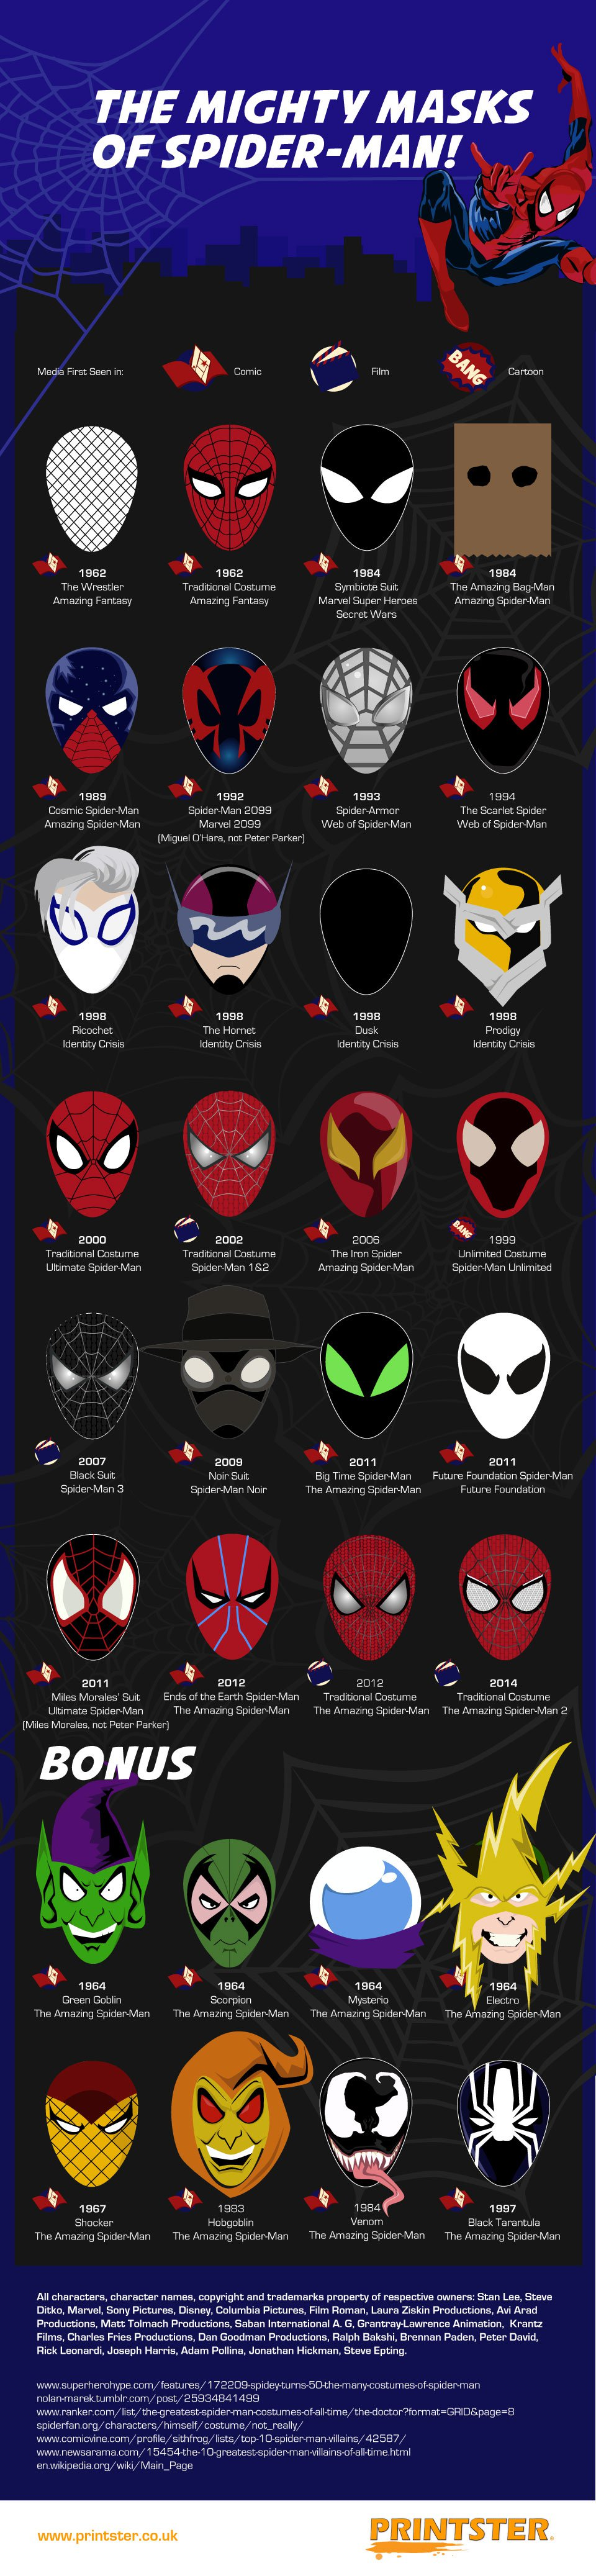 infographic examines spidermans coolest masks � geektyrant